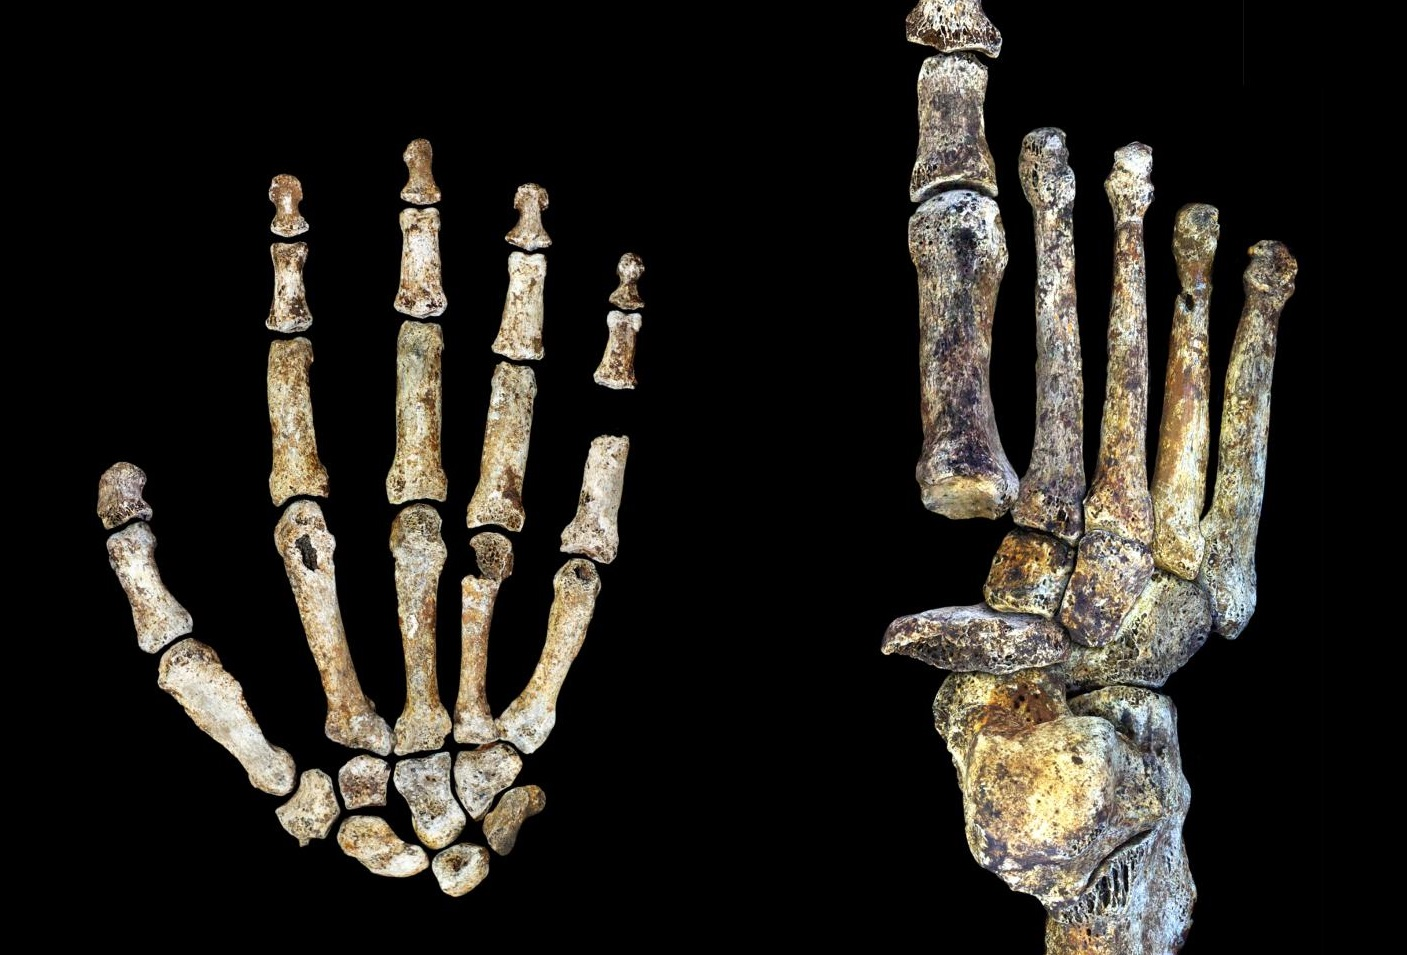 The Homo naledi hand and foot were uniquely adapted for both tree climbing and walking upright. CREDIT Peter Schmid and William Harcourt-Smith | Wits University